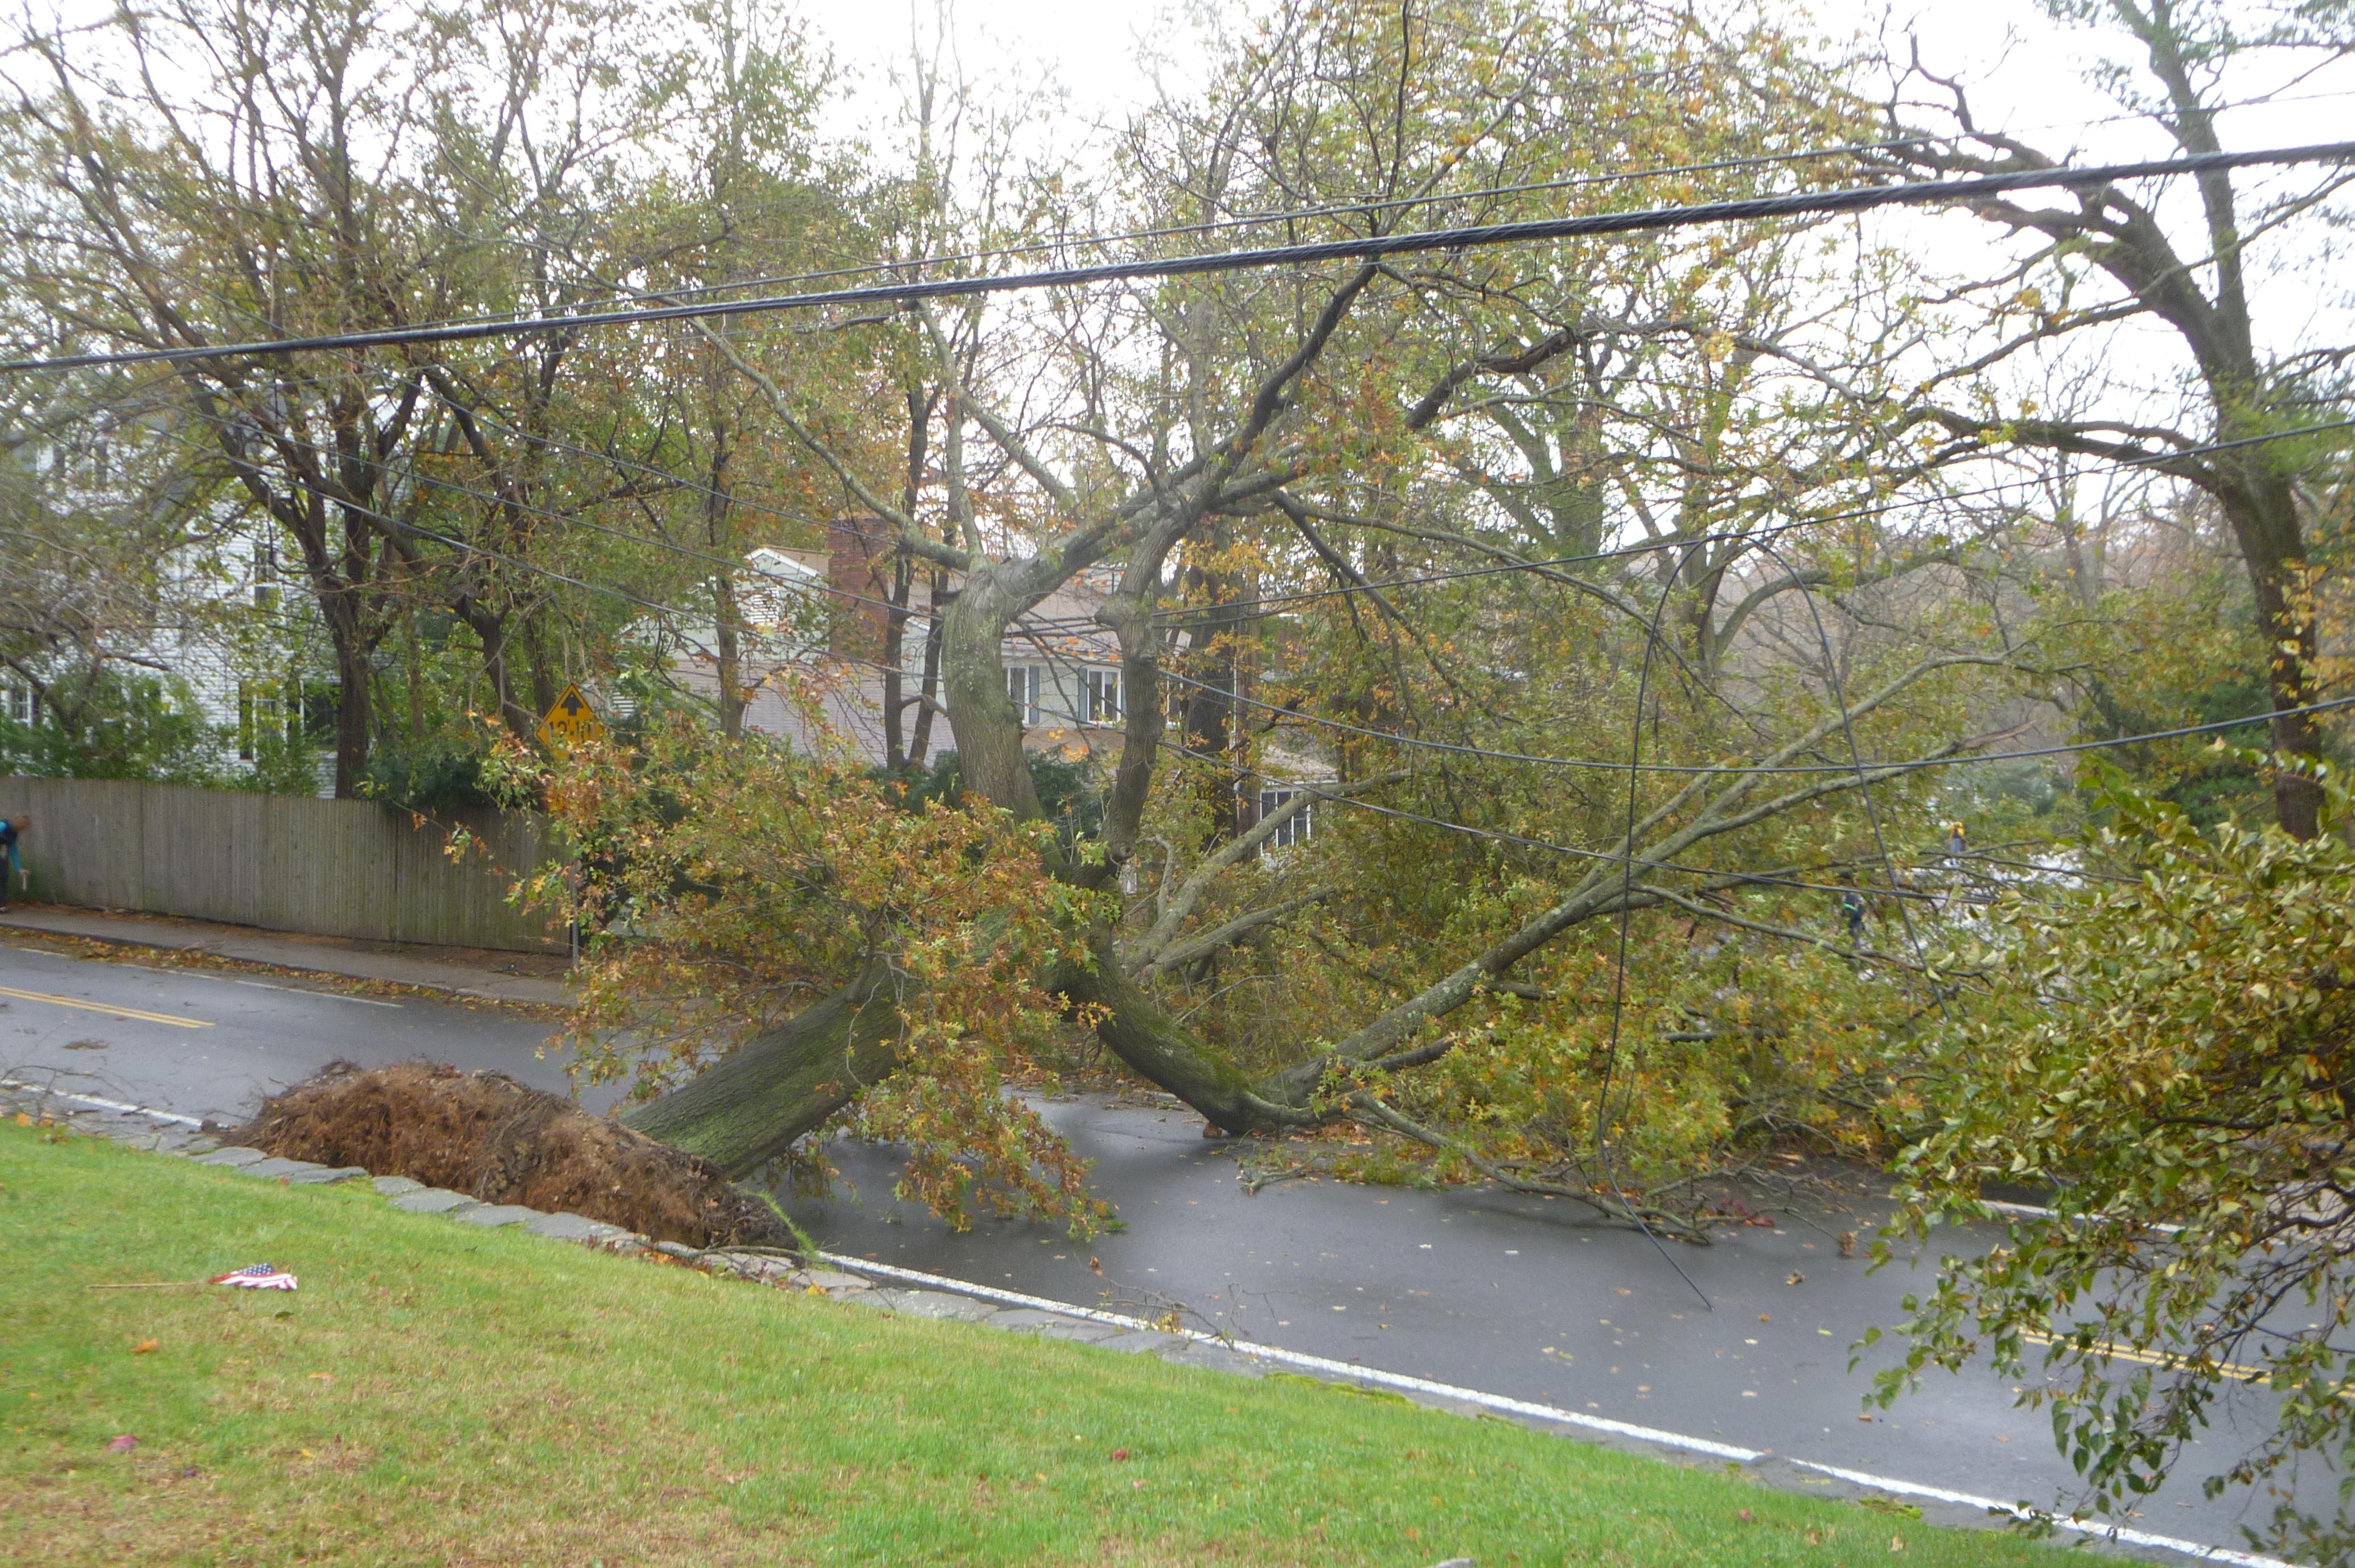 This fallen tree was blocking Sound Shore Rd. on Tuesday.